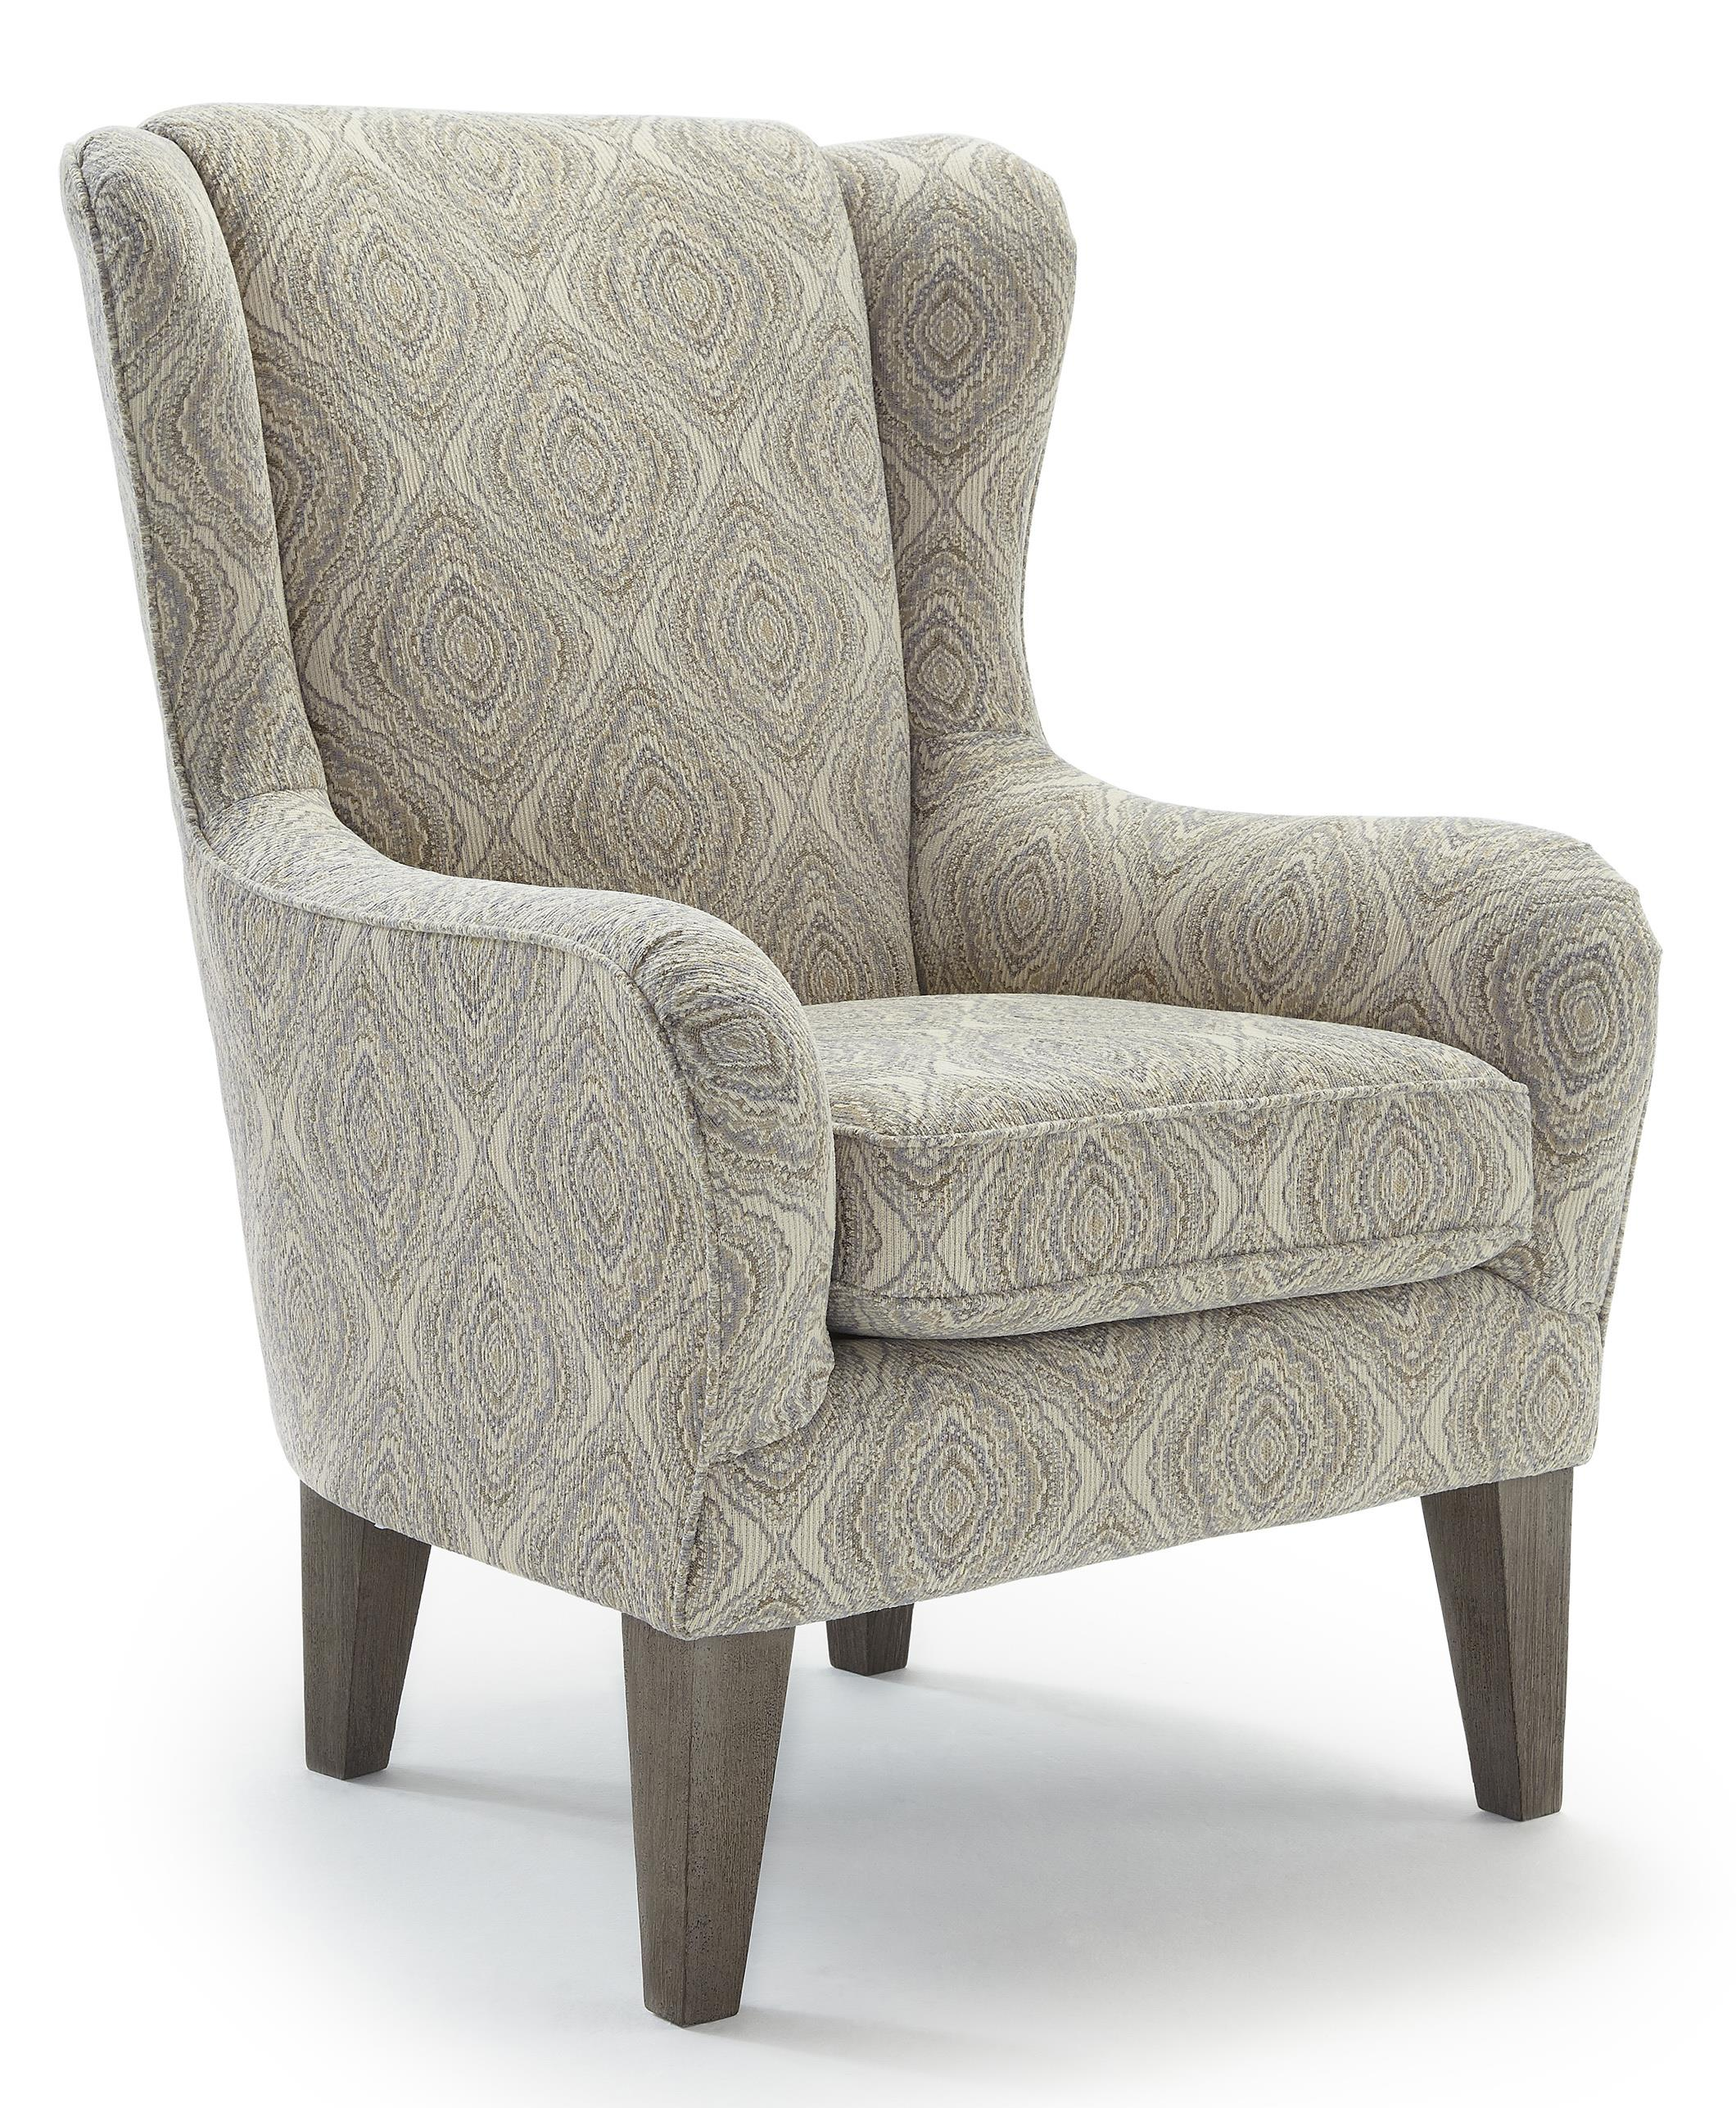 Club Chairs Lorette Club Chair by Best Home Furnishings at Darvin Furniture